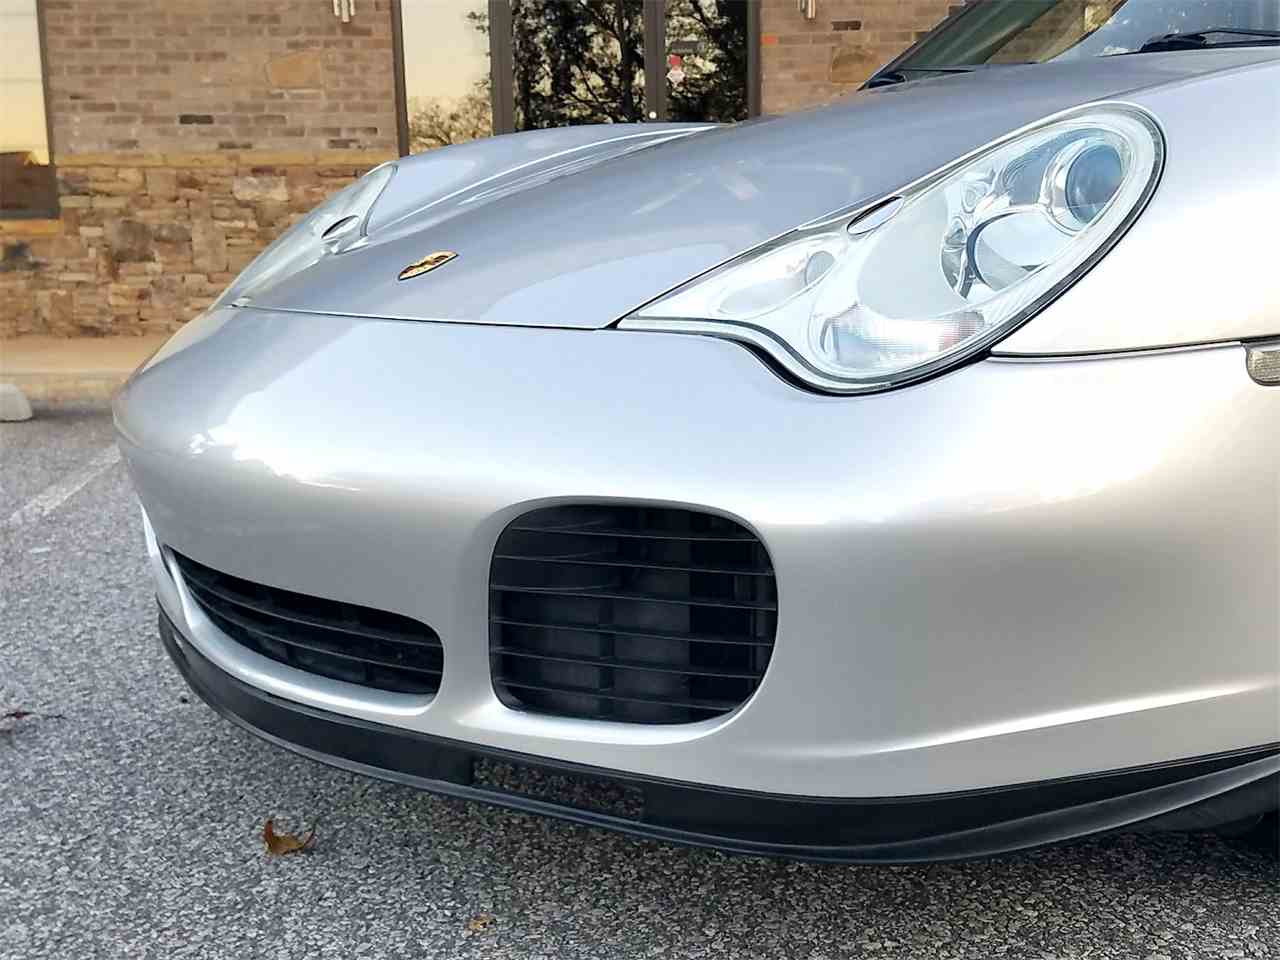 Large Picture of 2004 Porsche 911 Carrera Turbo located in Georgia - $55,000.00 Offered by Dick Barbour Performance - MCDK